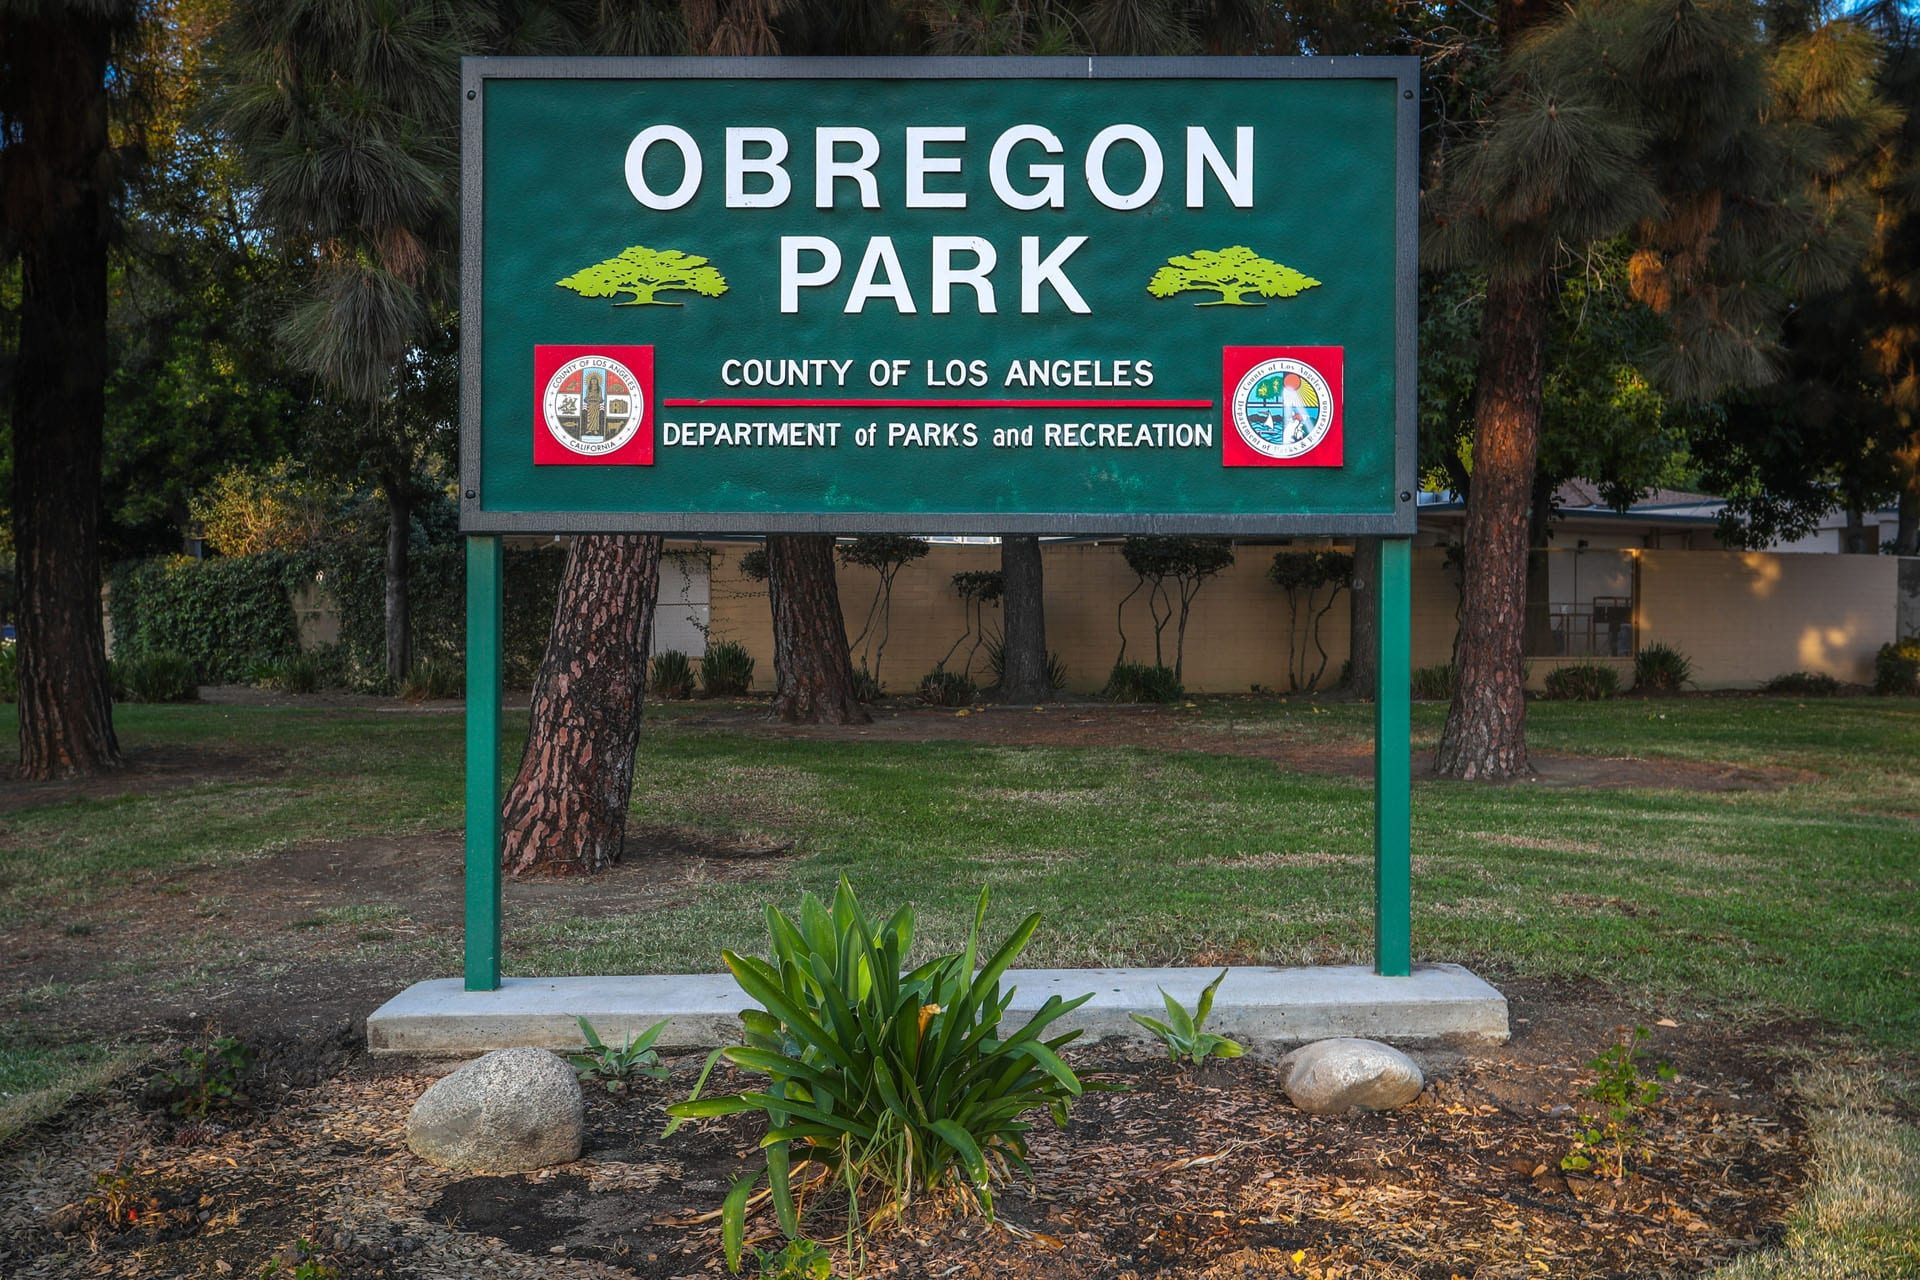 Obregon Park sign